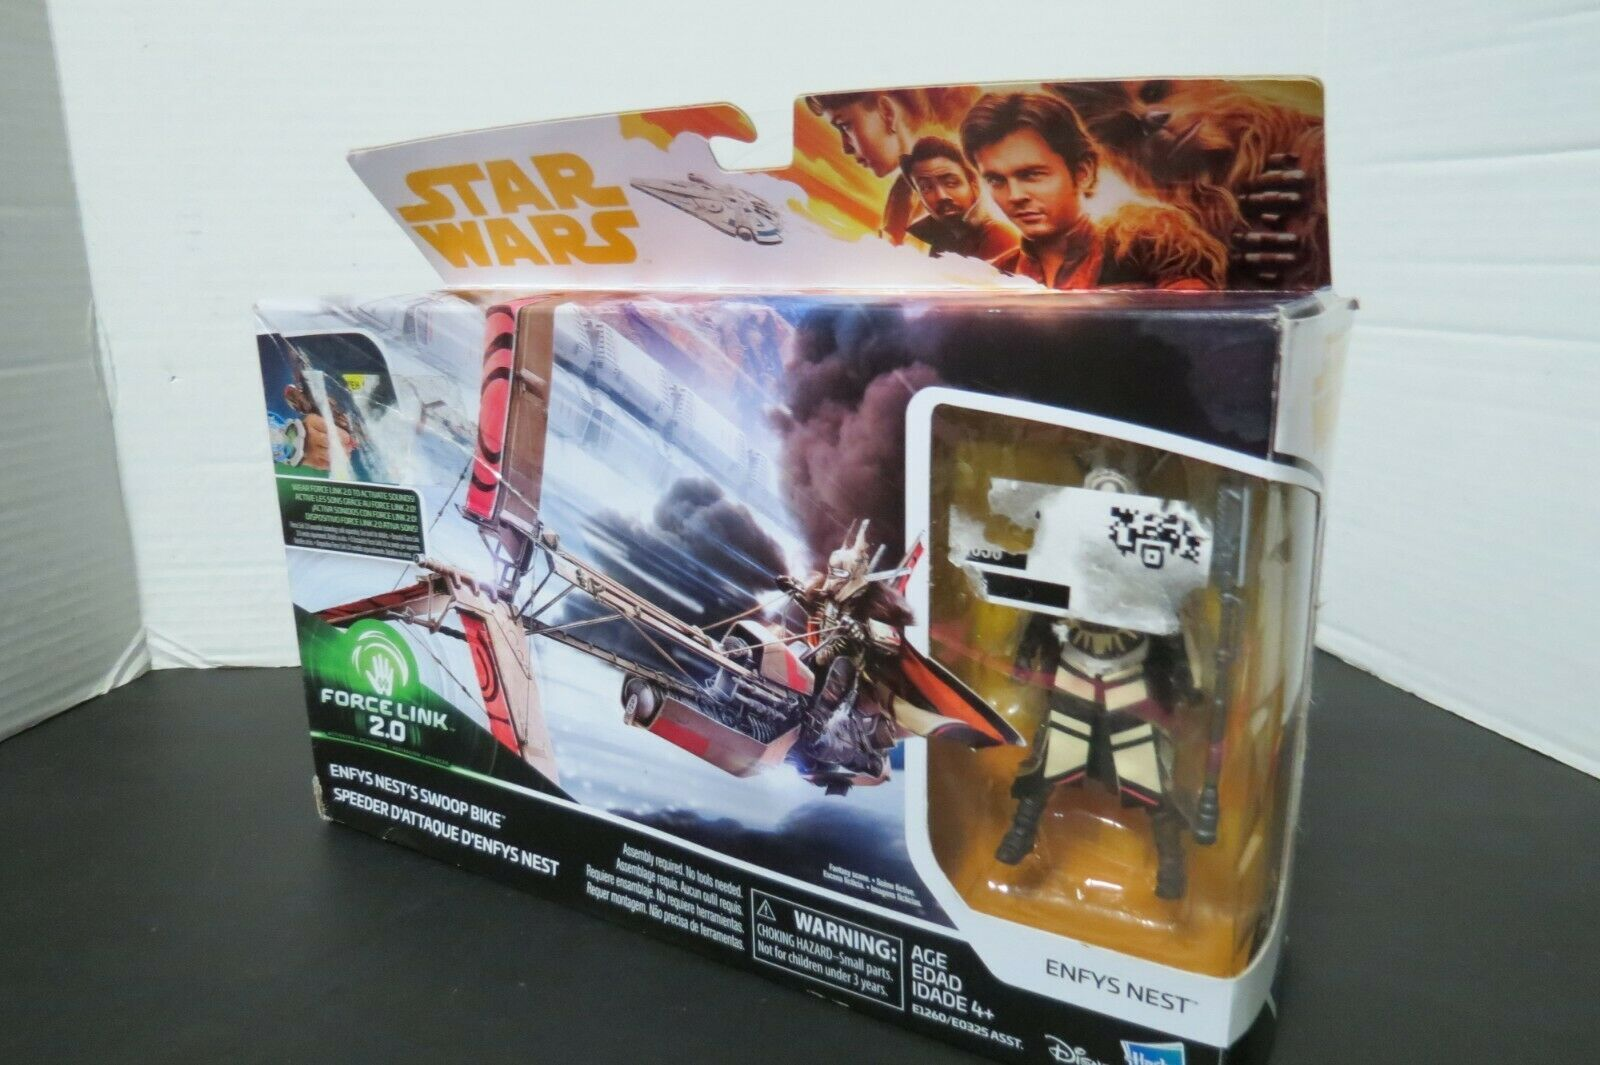 Star Wars Force Link 2.0 Enfys Nest Swoop Bike And Figurine New In Box - $10.00